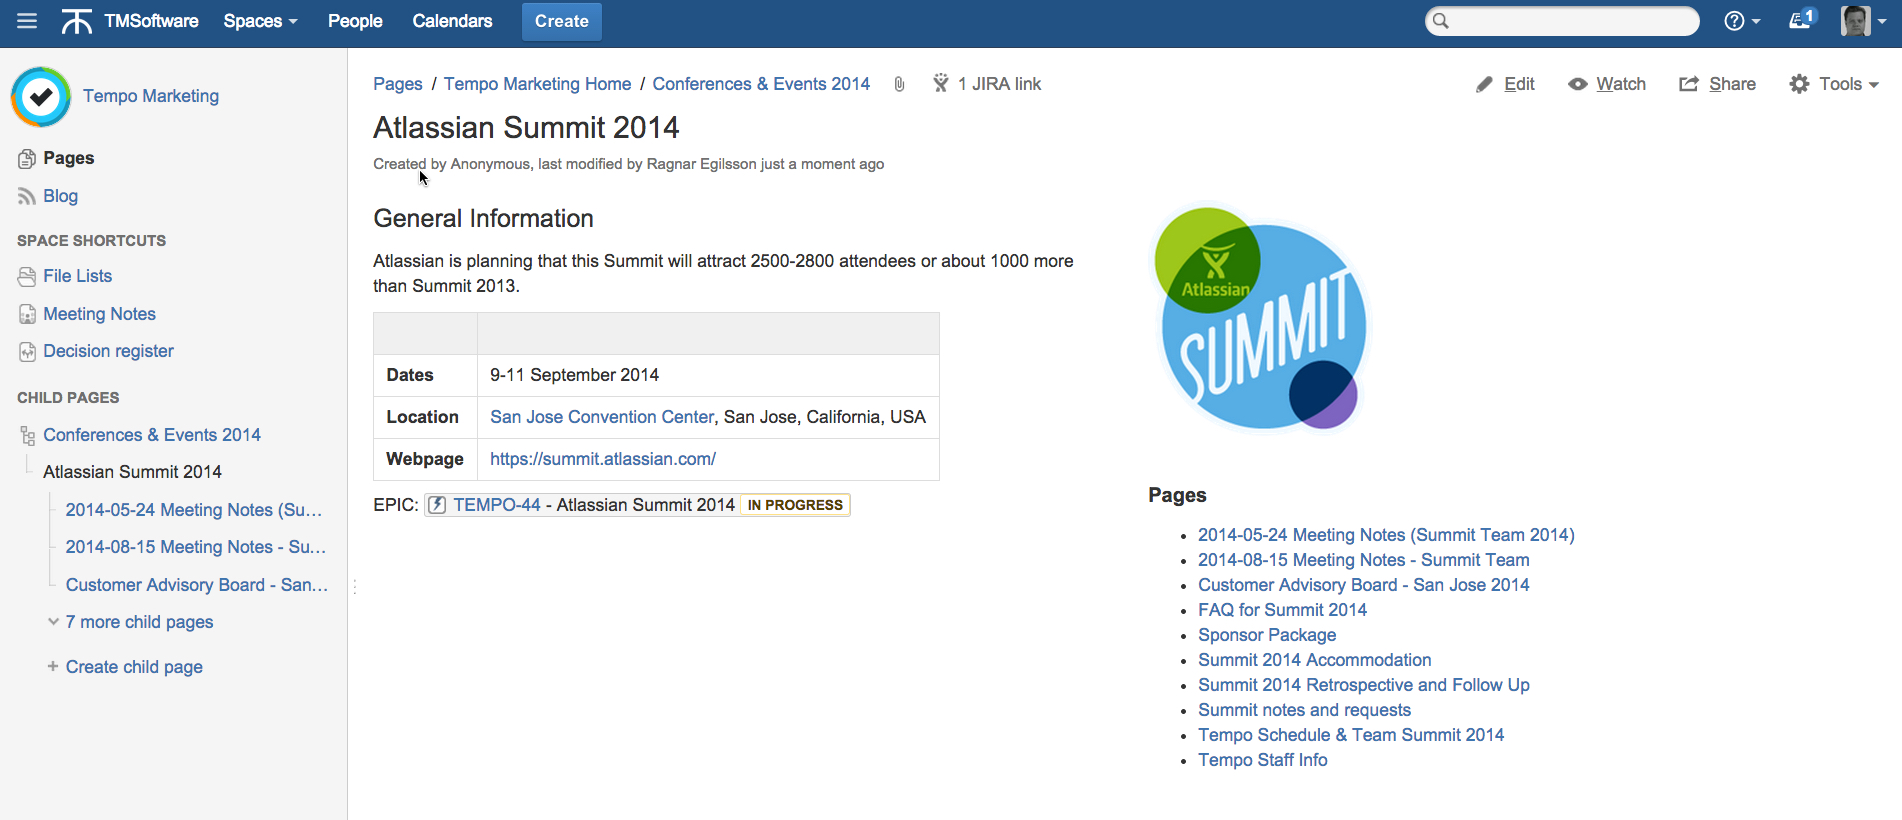 screenshot of Tempo Marketing conference page in Confluence